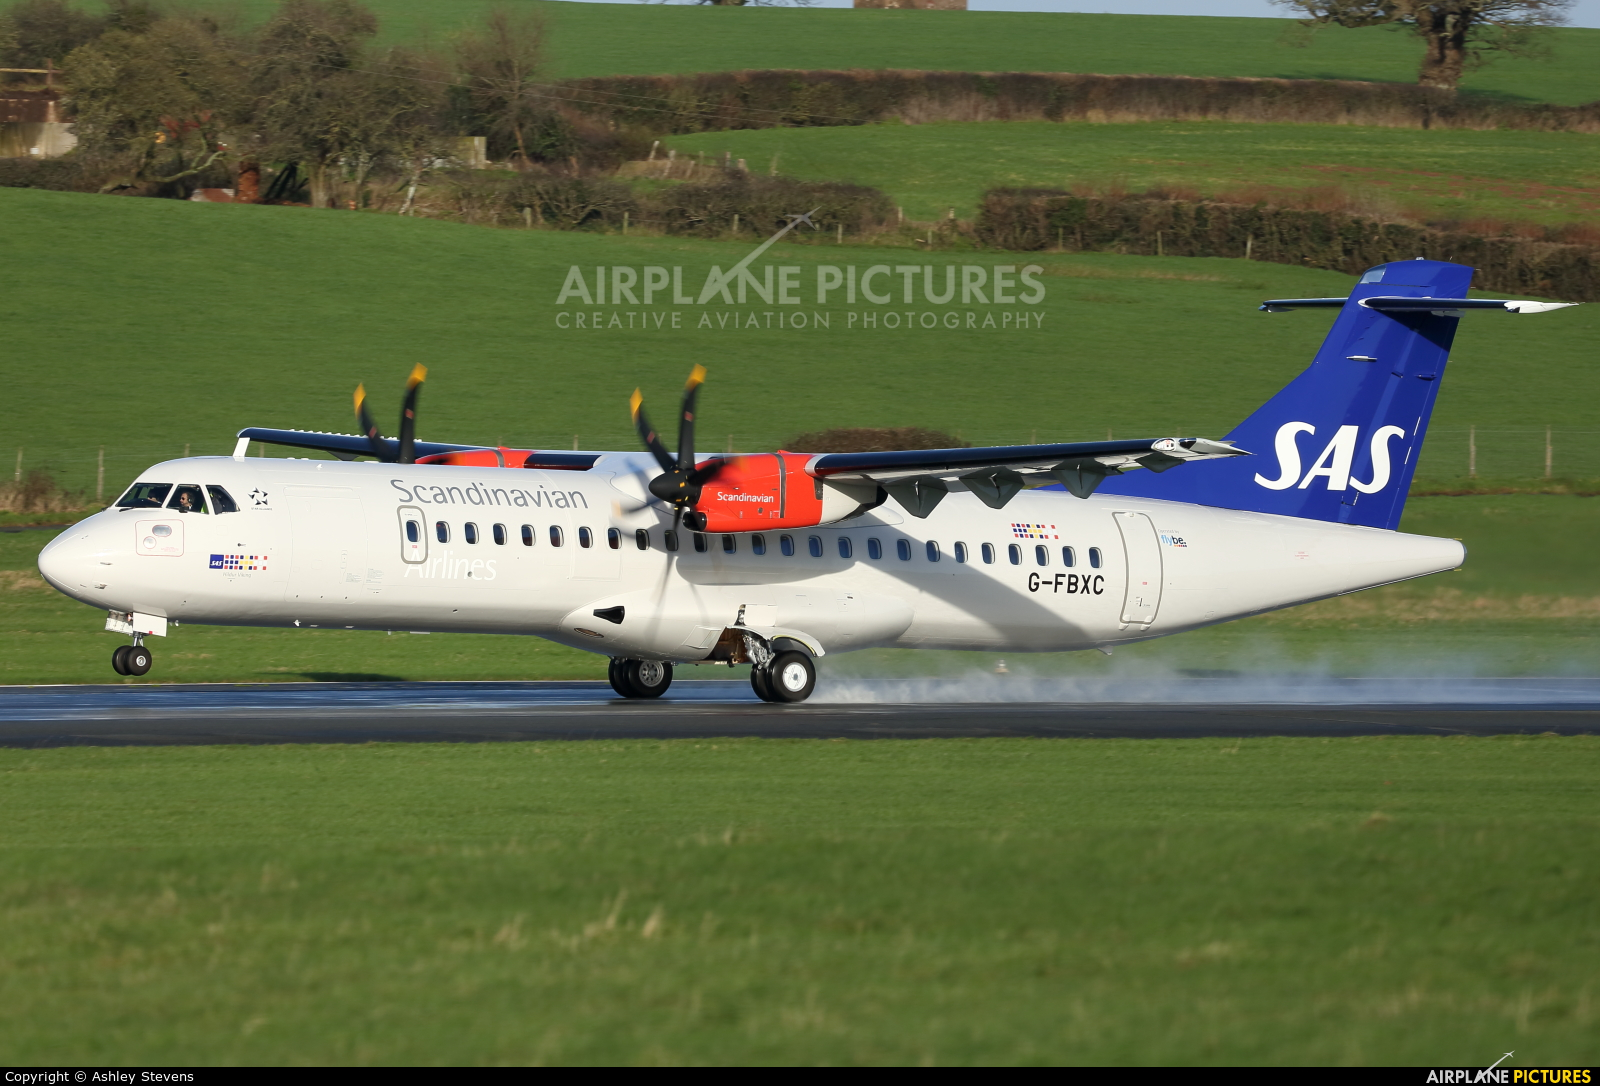 SAS - Scandinavian Airlines (Flybe) G-FBXC aircraft at Exeter